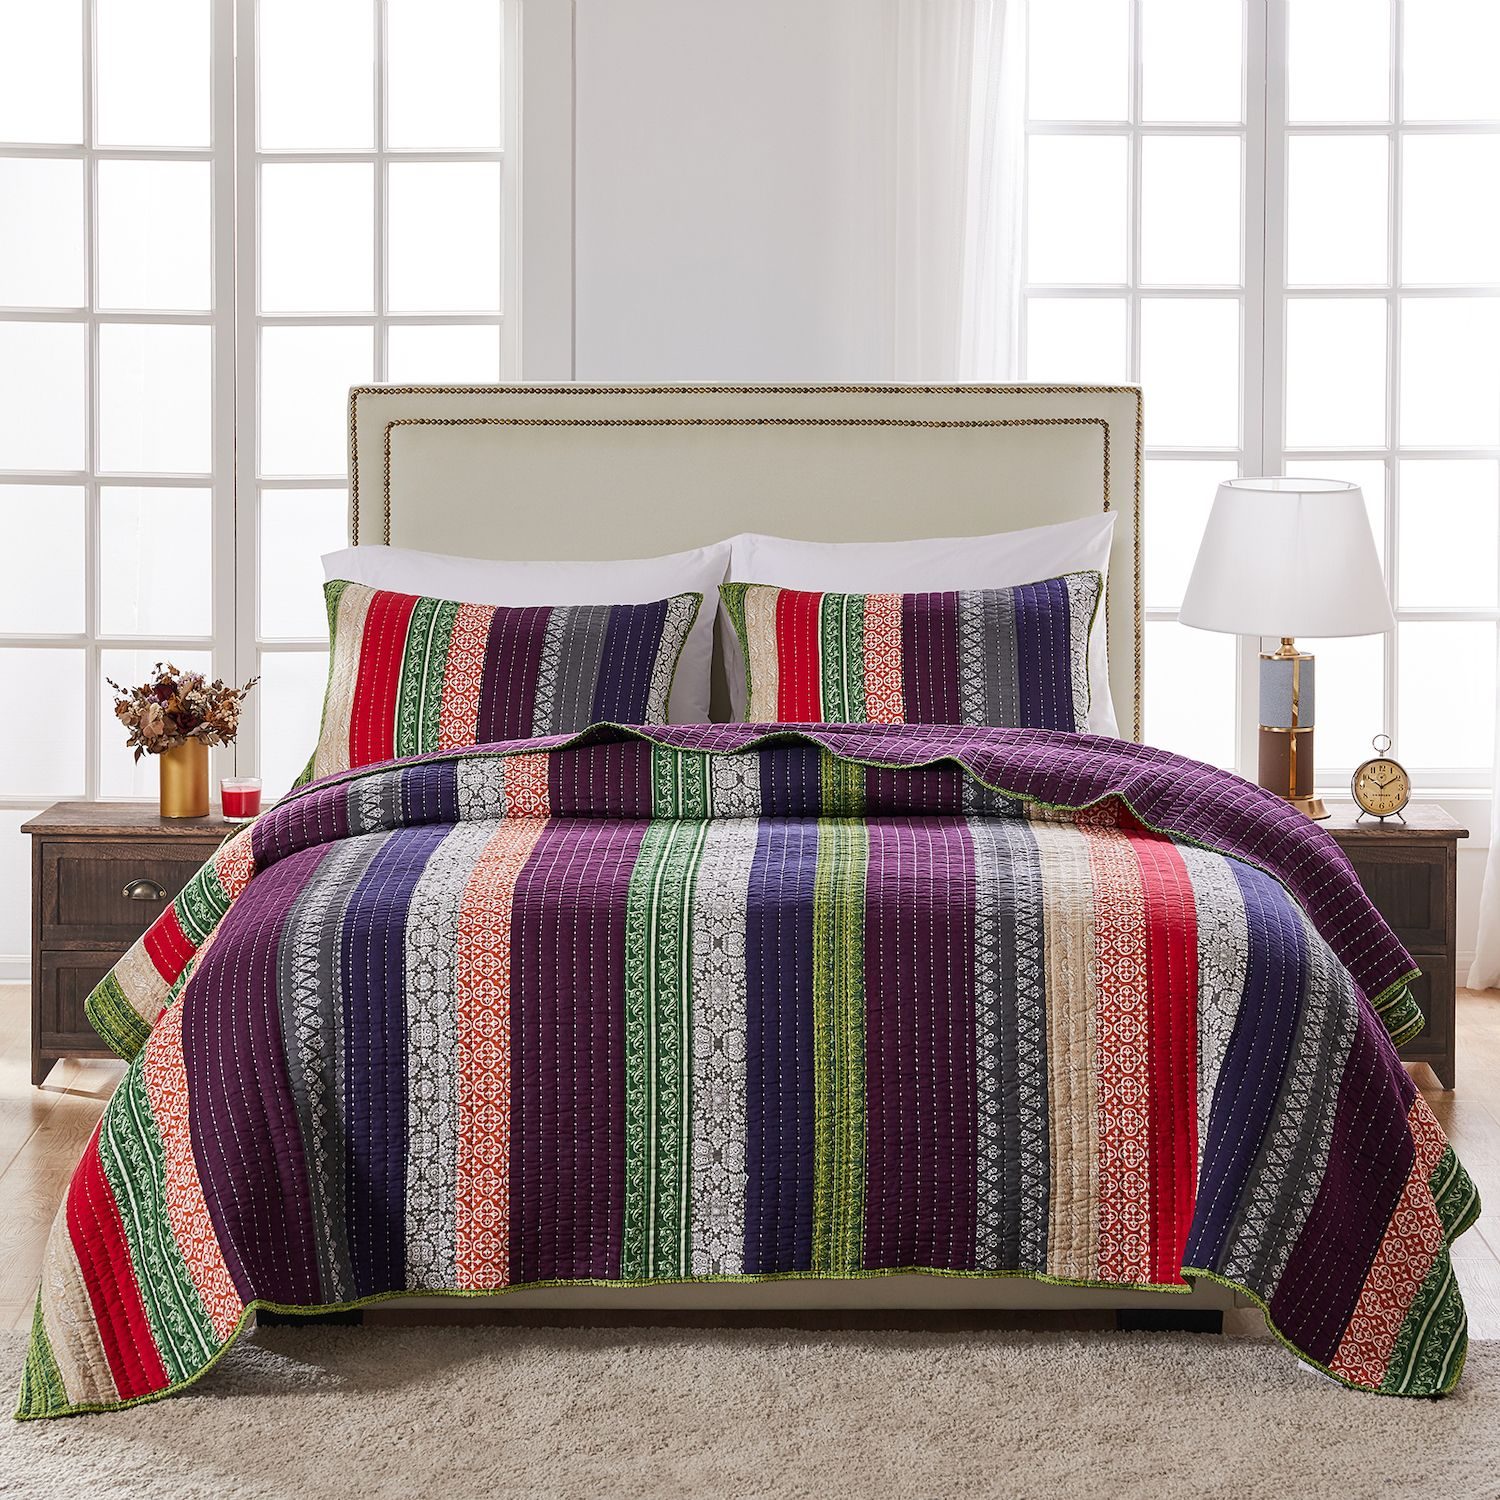 greenland home fashions marley quilt set - Greenland Home Fashions